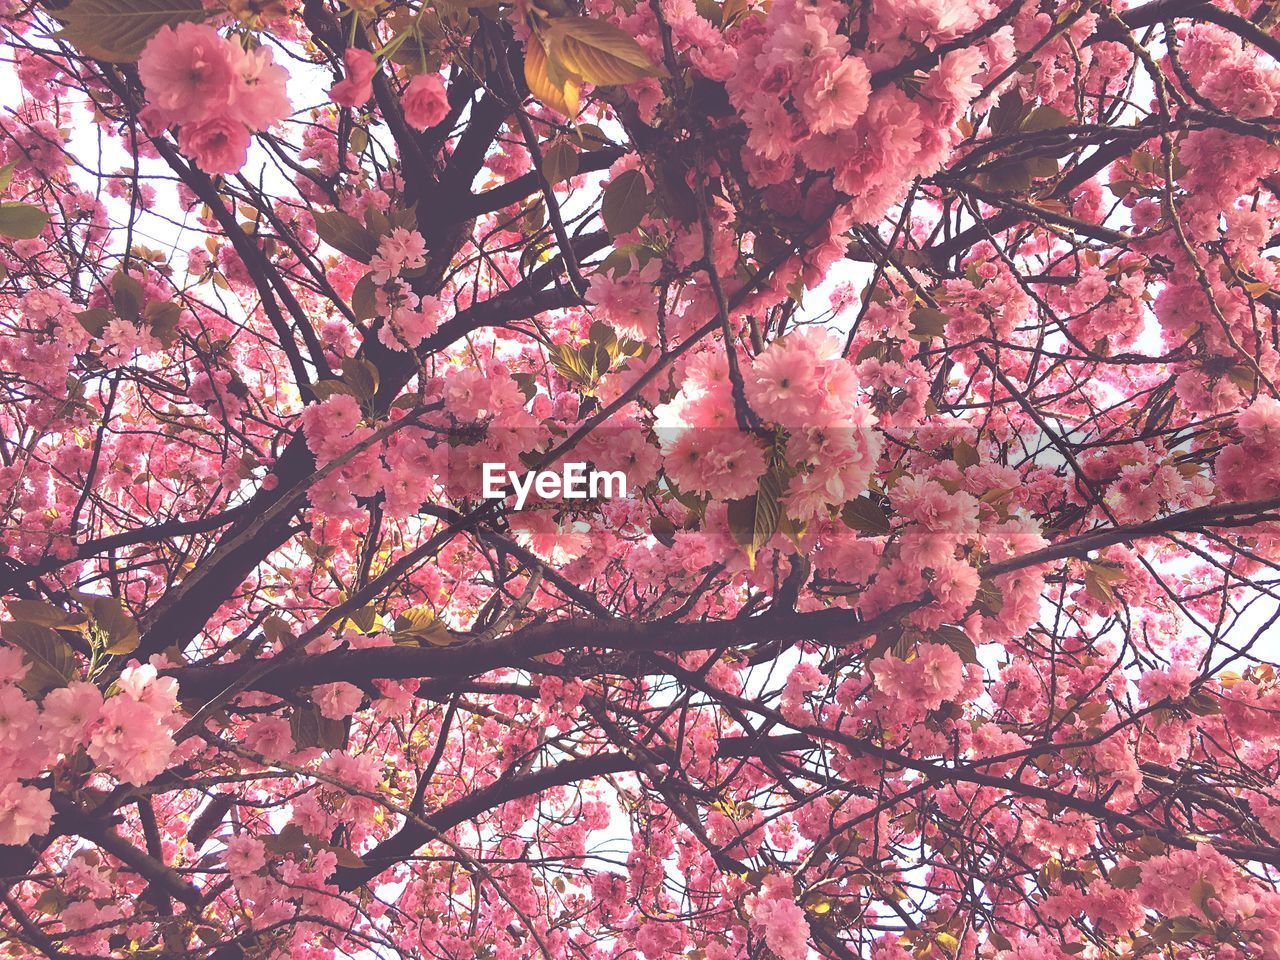 tree, pink color, branch, plant, flowering plant, low angle view, flower, growth, blossom, springtime, beauty in nature, fragility, nature, cherry blossom, freshness, no people, vulnerability, cherry tree, day, backgrounds, outdoors, change, spring, plum blossom, bunch of flowers